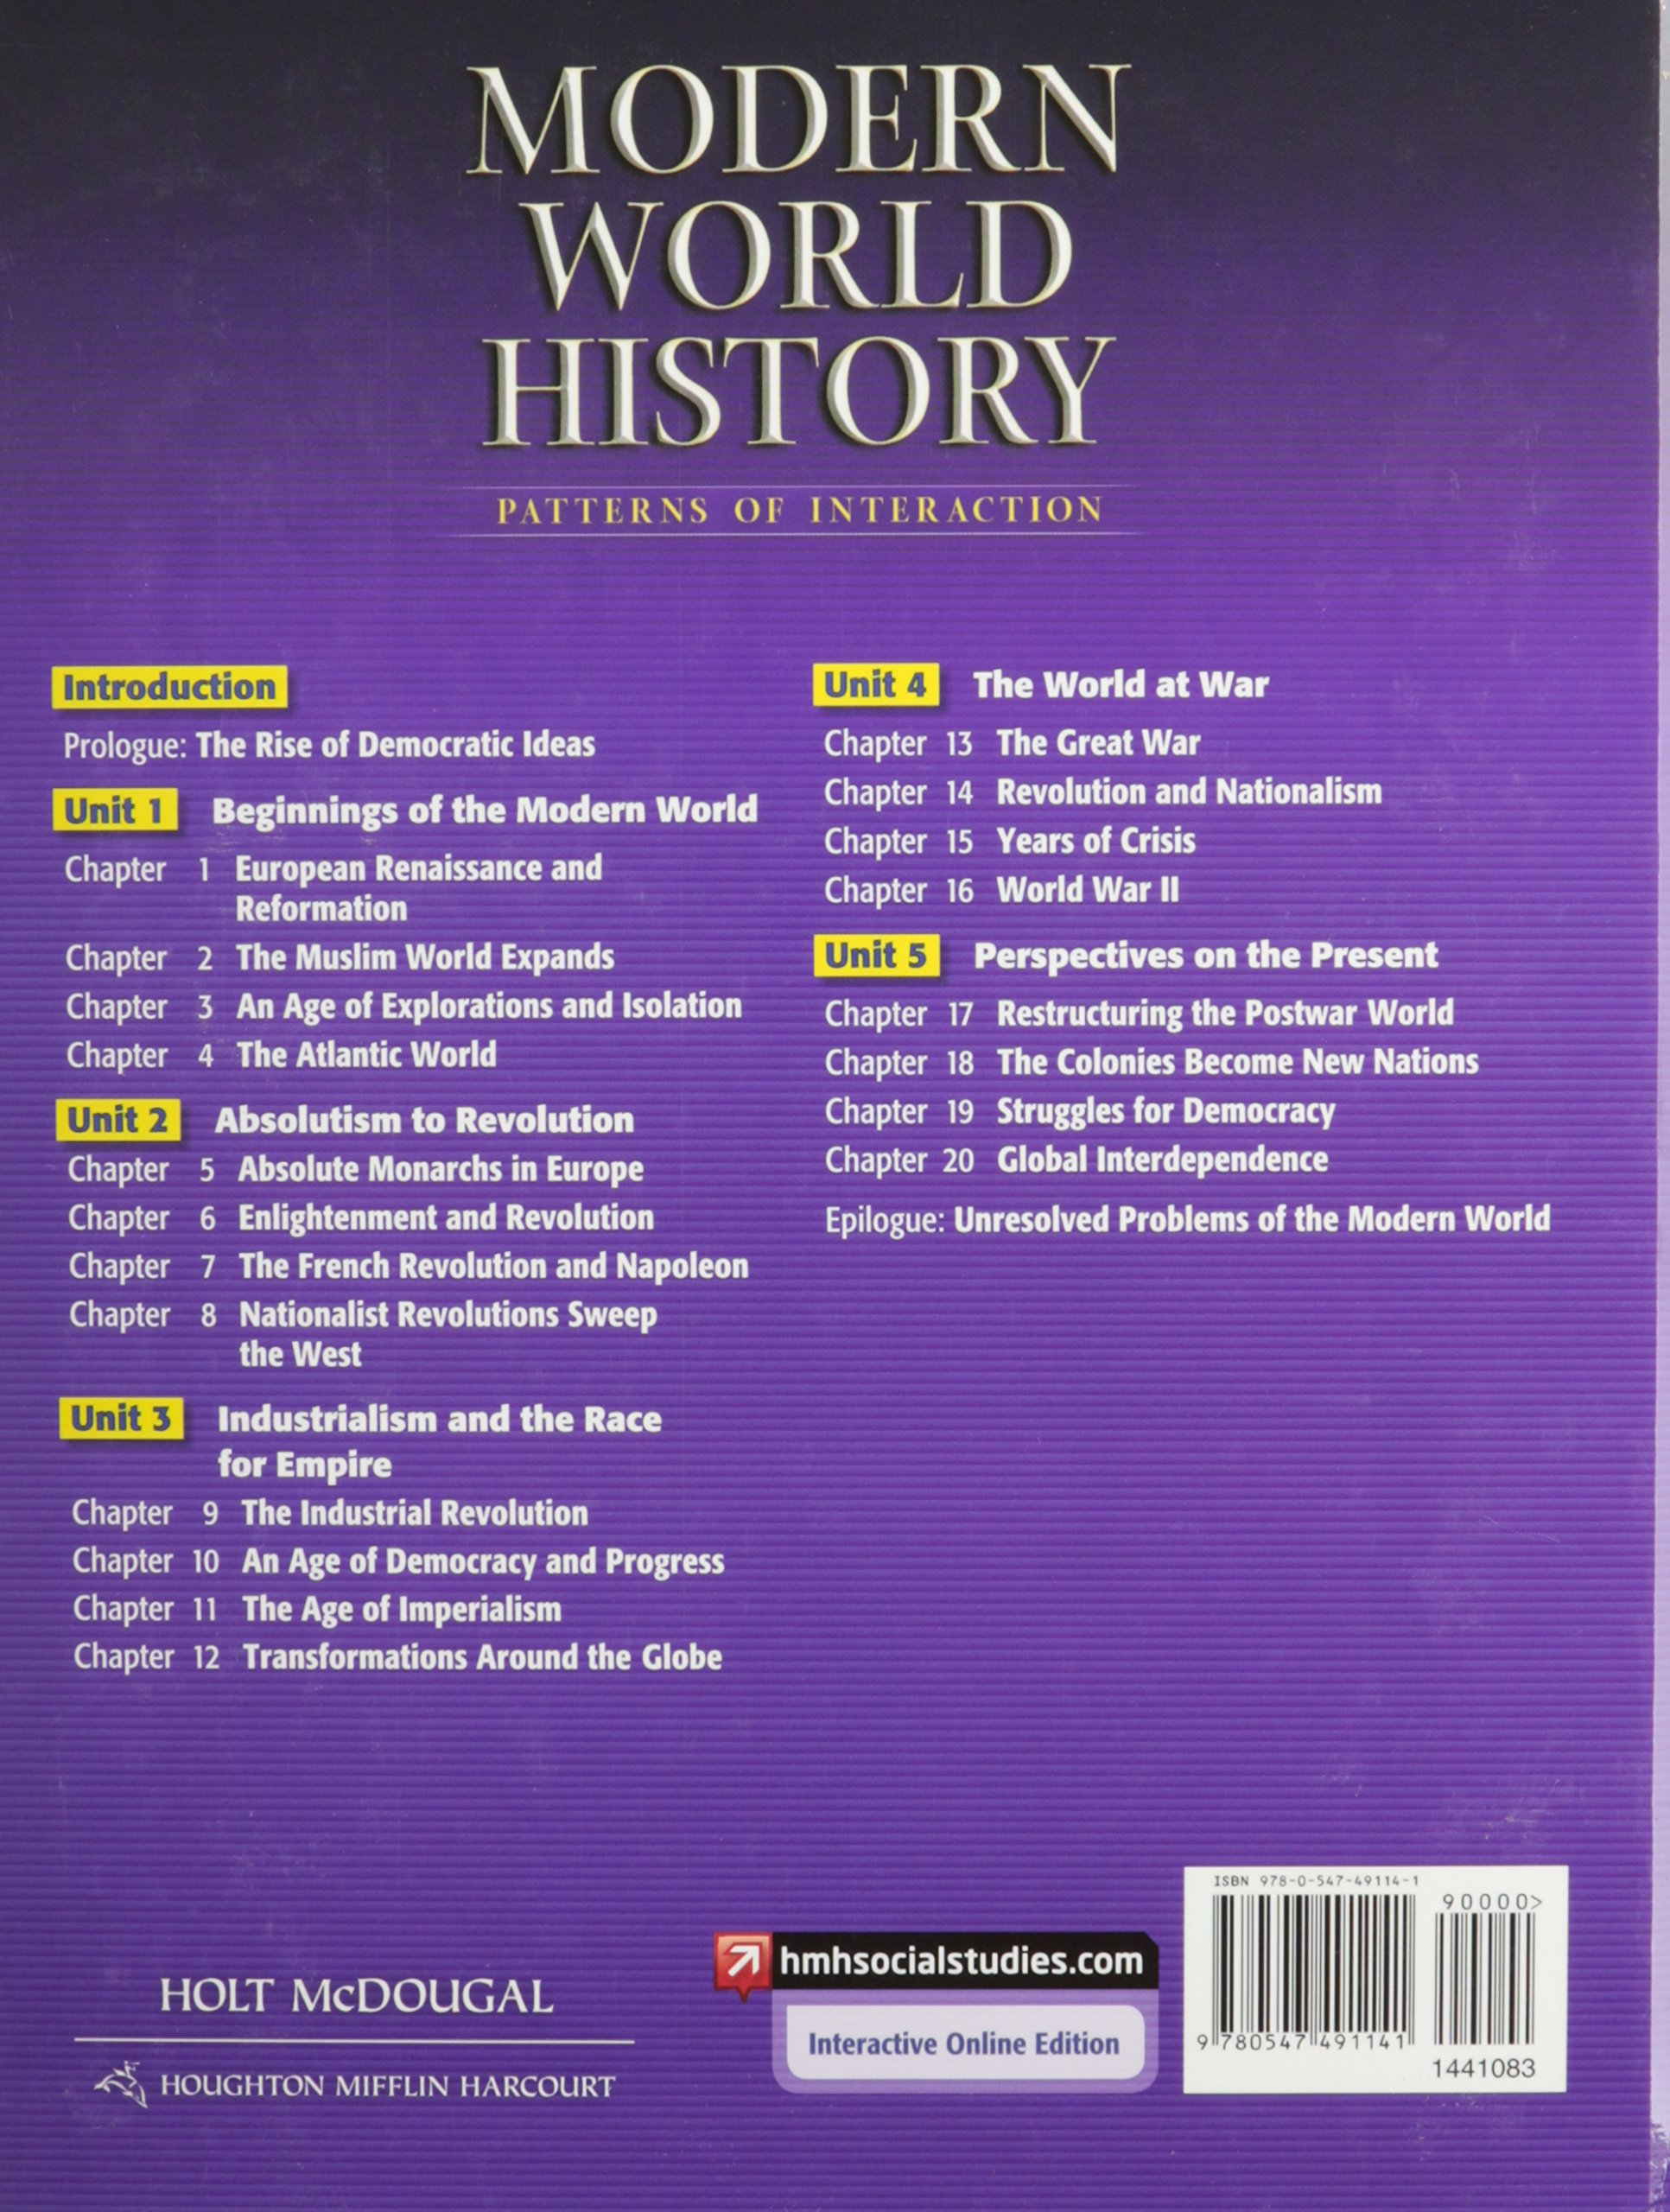 Modern World History Textbook Holt Mcdougal Pdf